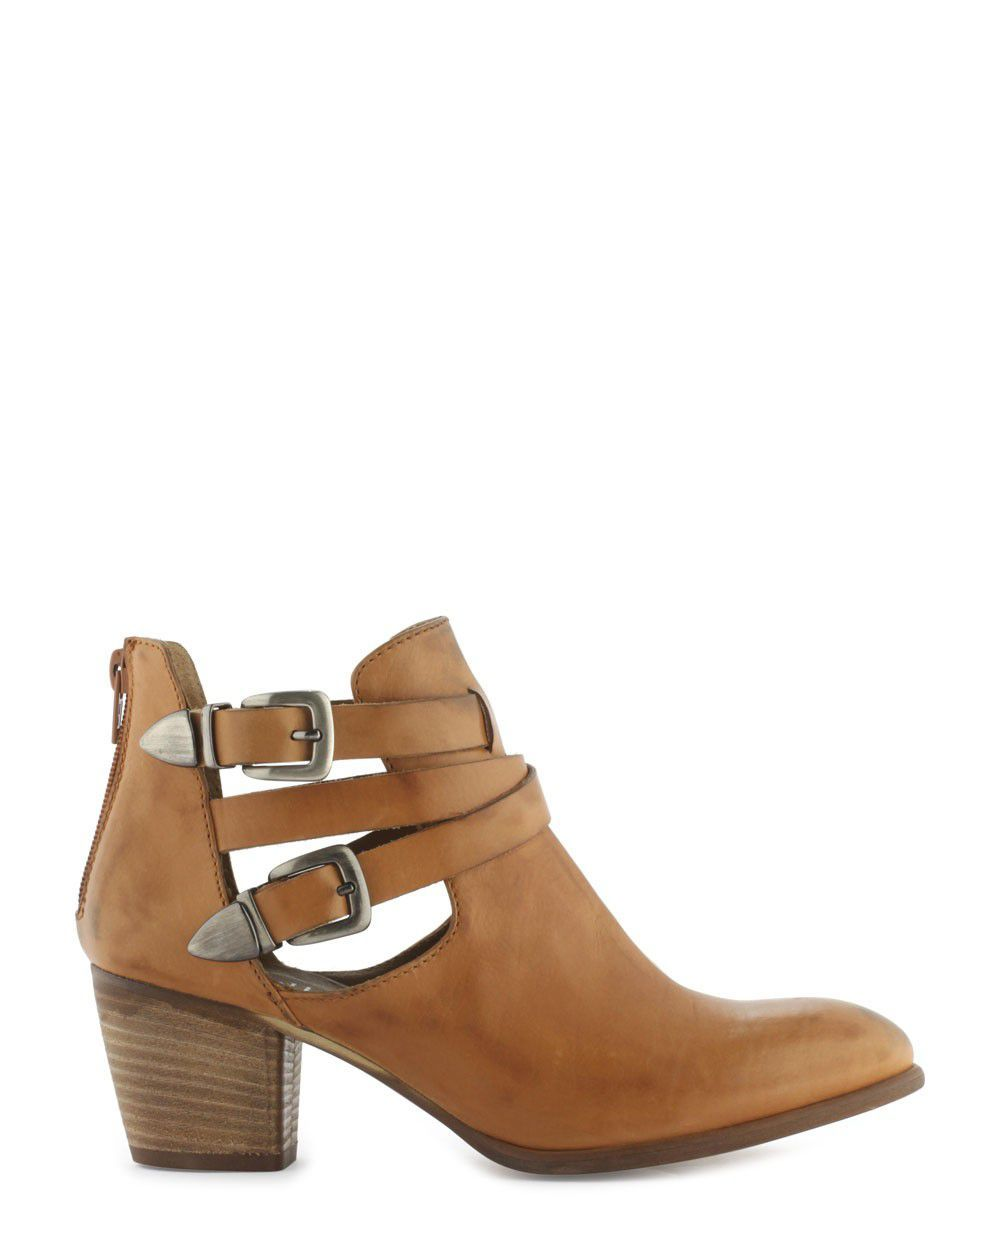 Minelli Days - Collection chaussures Femme - Boots - Boots - Maora - Cuir